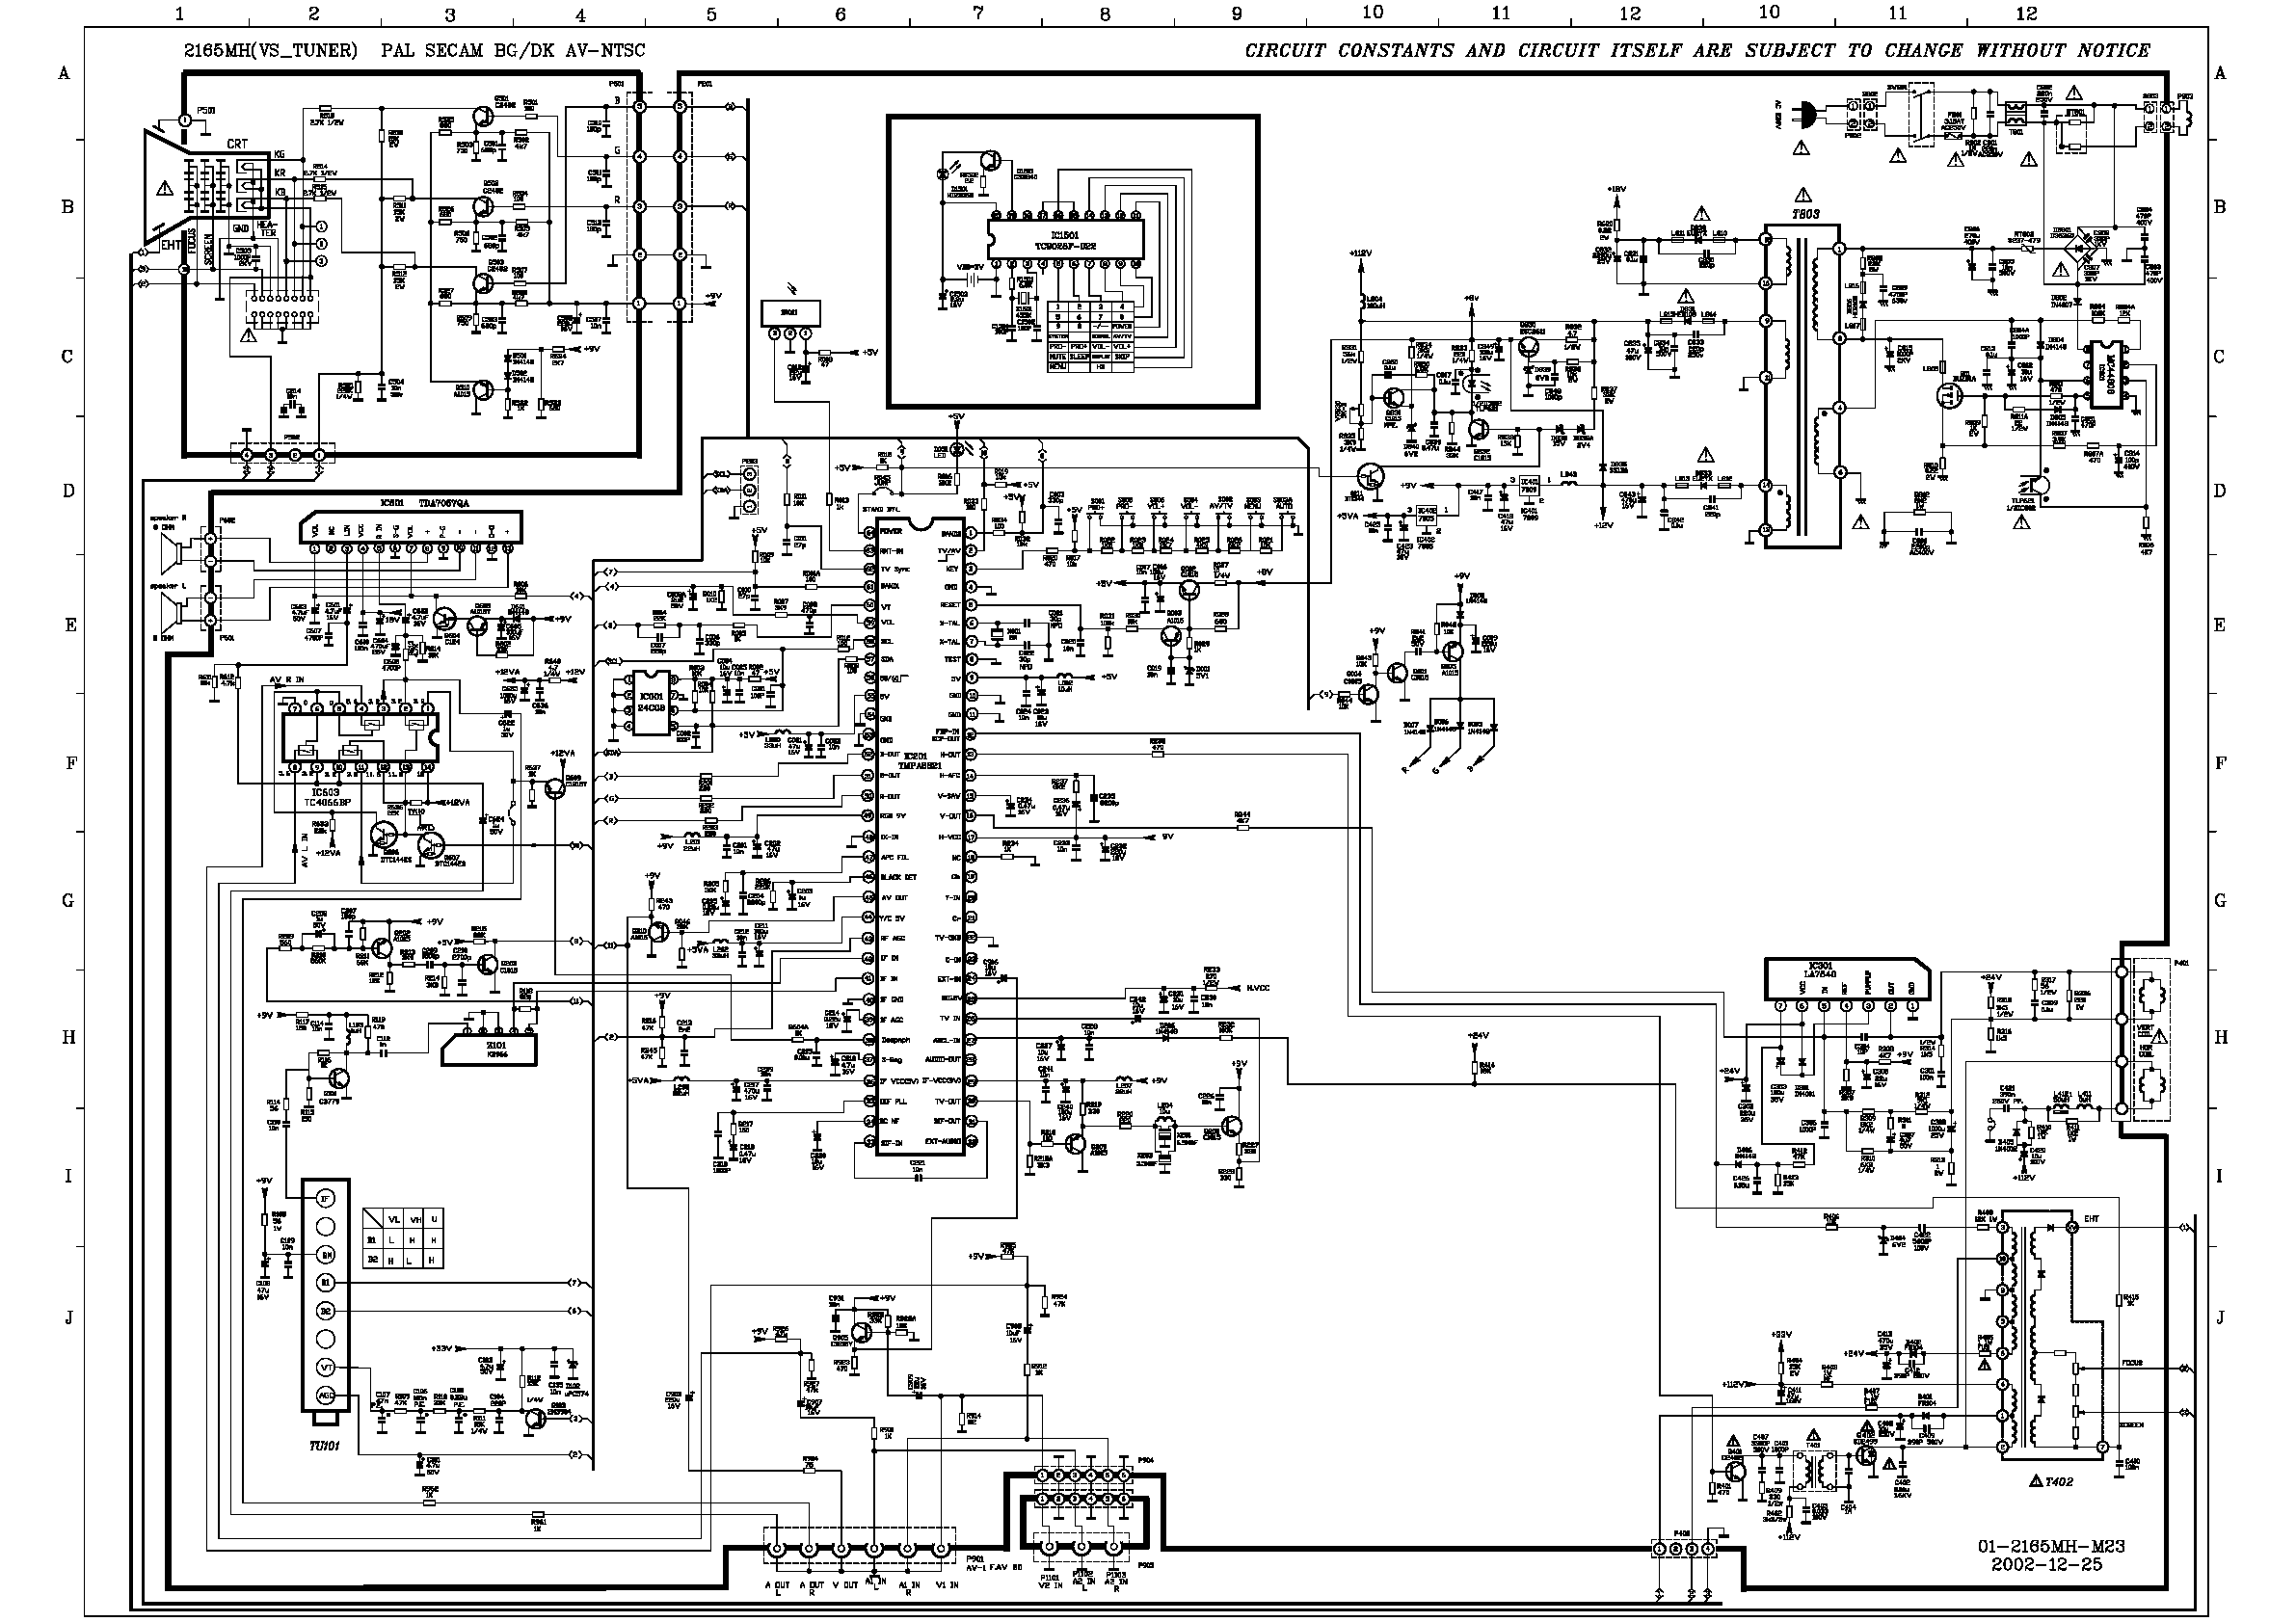 Auto Engine Diagram Free Download Wiring Library